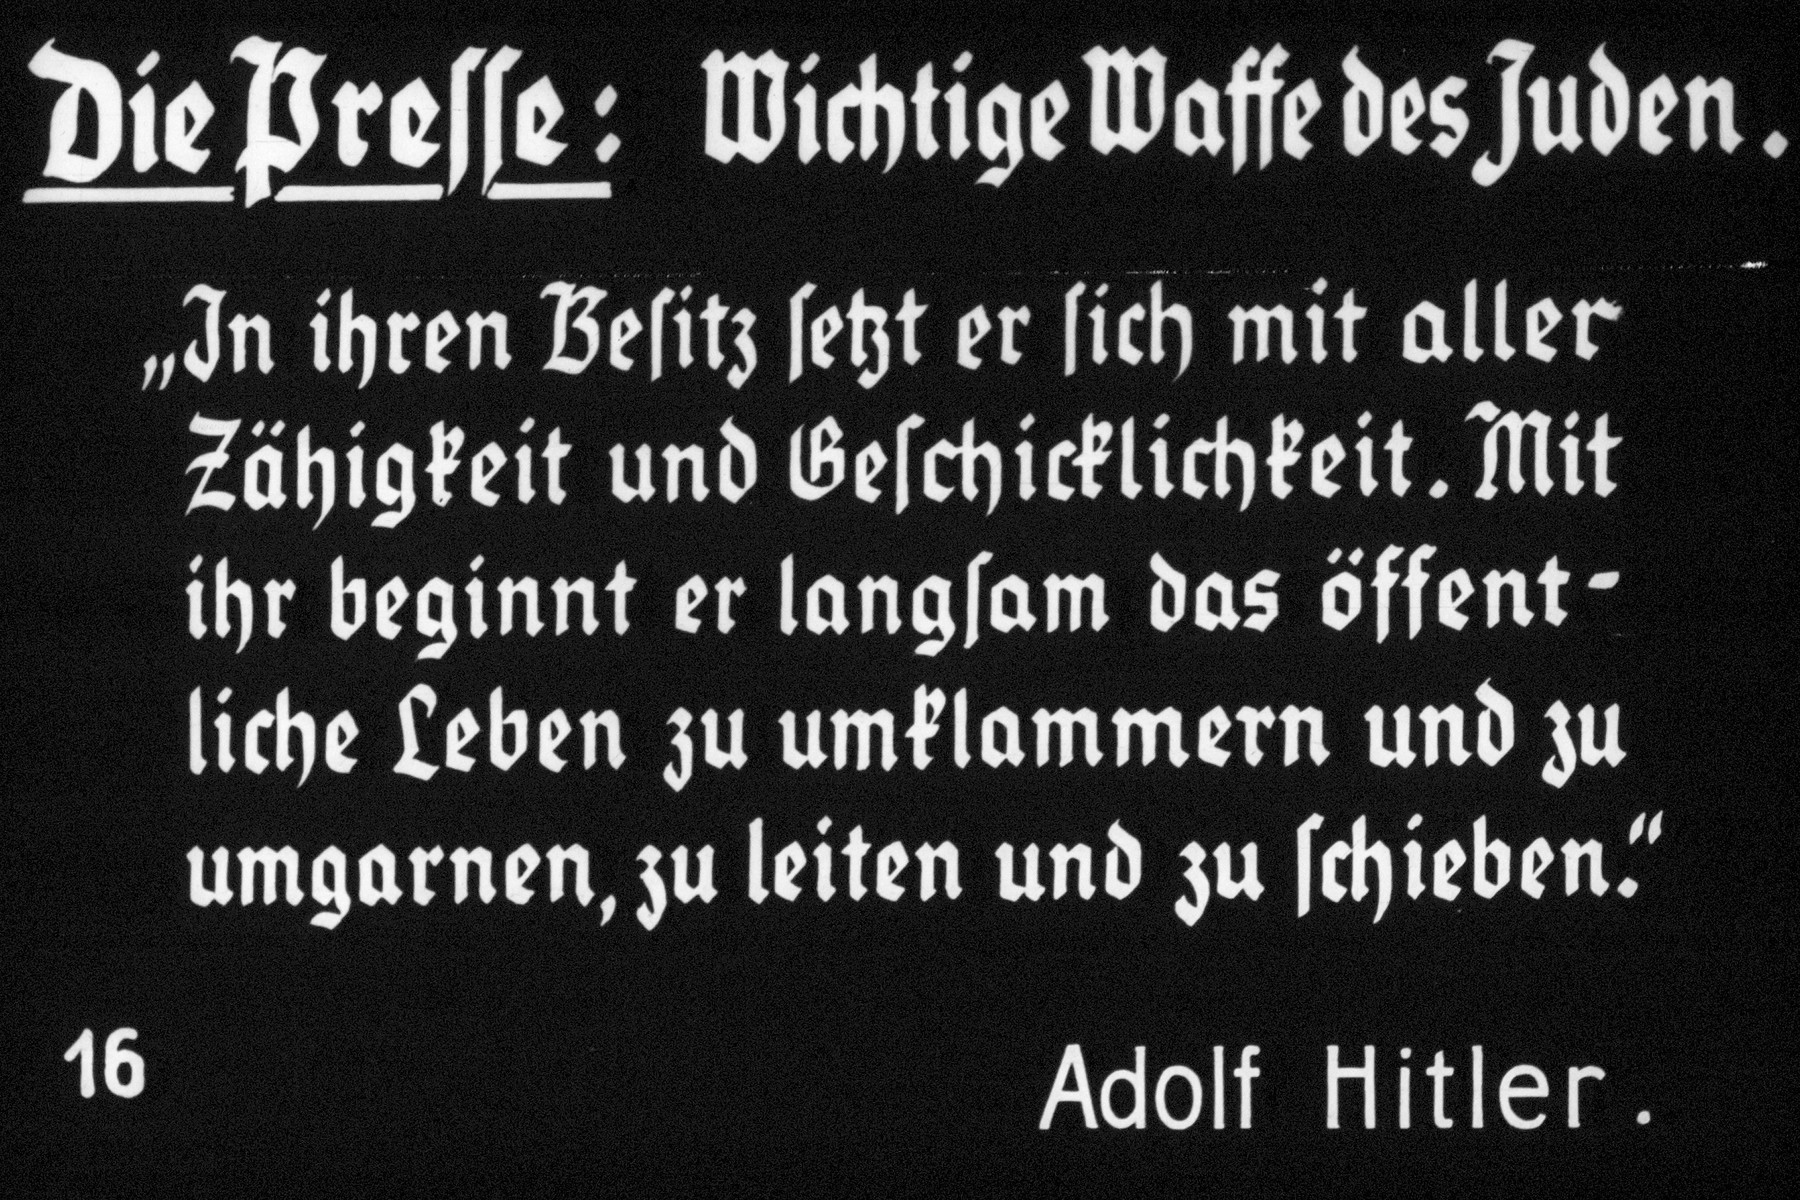 "16th Nazi propaganda slide of a Hitler Youth educational presentation entitled ""Germany Overcomes Jewry.""  Die Presse: Wichtige Waffe des Juden.  ""In ihren Besitz setzt er sich mit aller Zähigkeit und Geschicklichkeit. Mit ihr beginnt er langsam offentlich Leben zu umklammern und zu umgarnen, zu leiten und zu schieben.""  Adolf Hitler //  The press: important weapon of the Jews. ""In their possession,they set with all their strength and skill. With it they slowly begin to publicly embrace public life and ensnare, guide and push.""  Adolf Hitler"